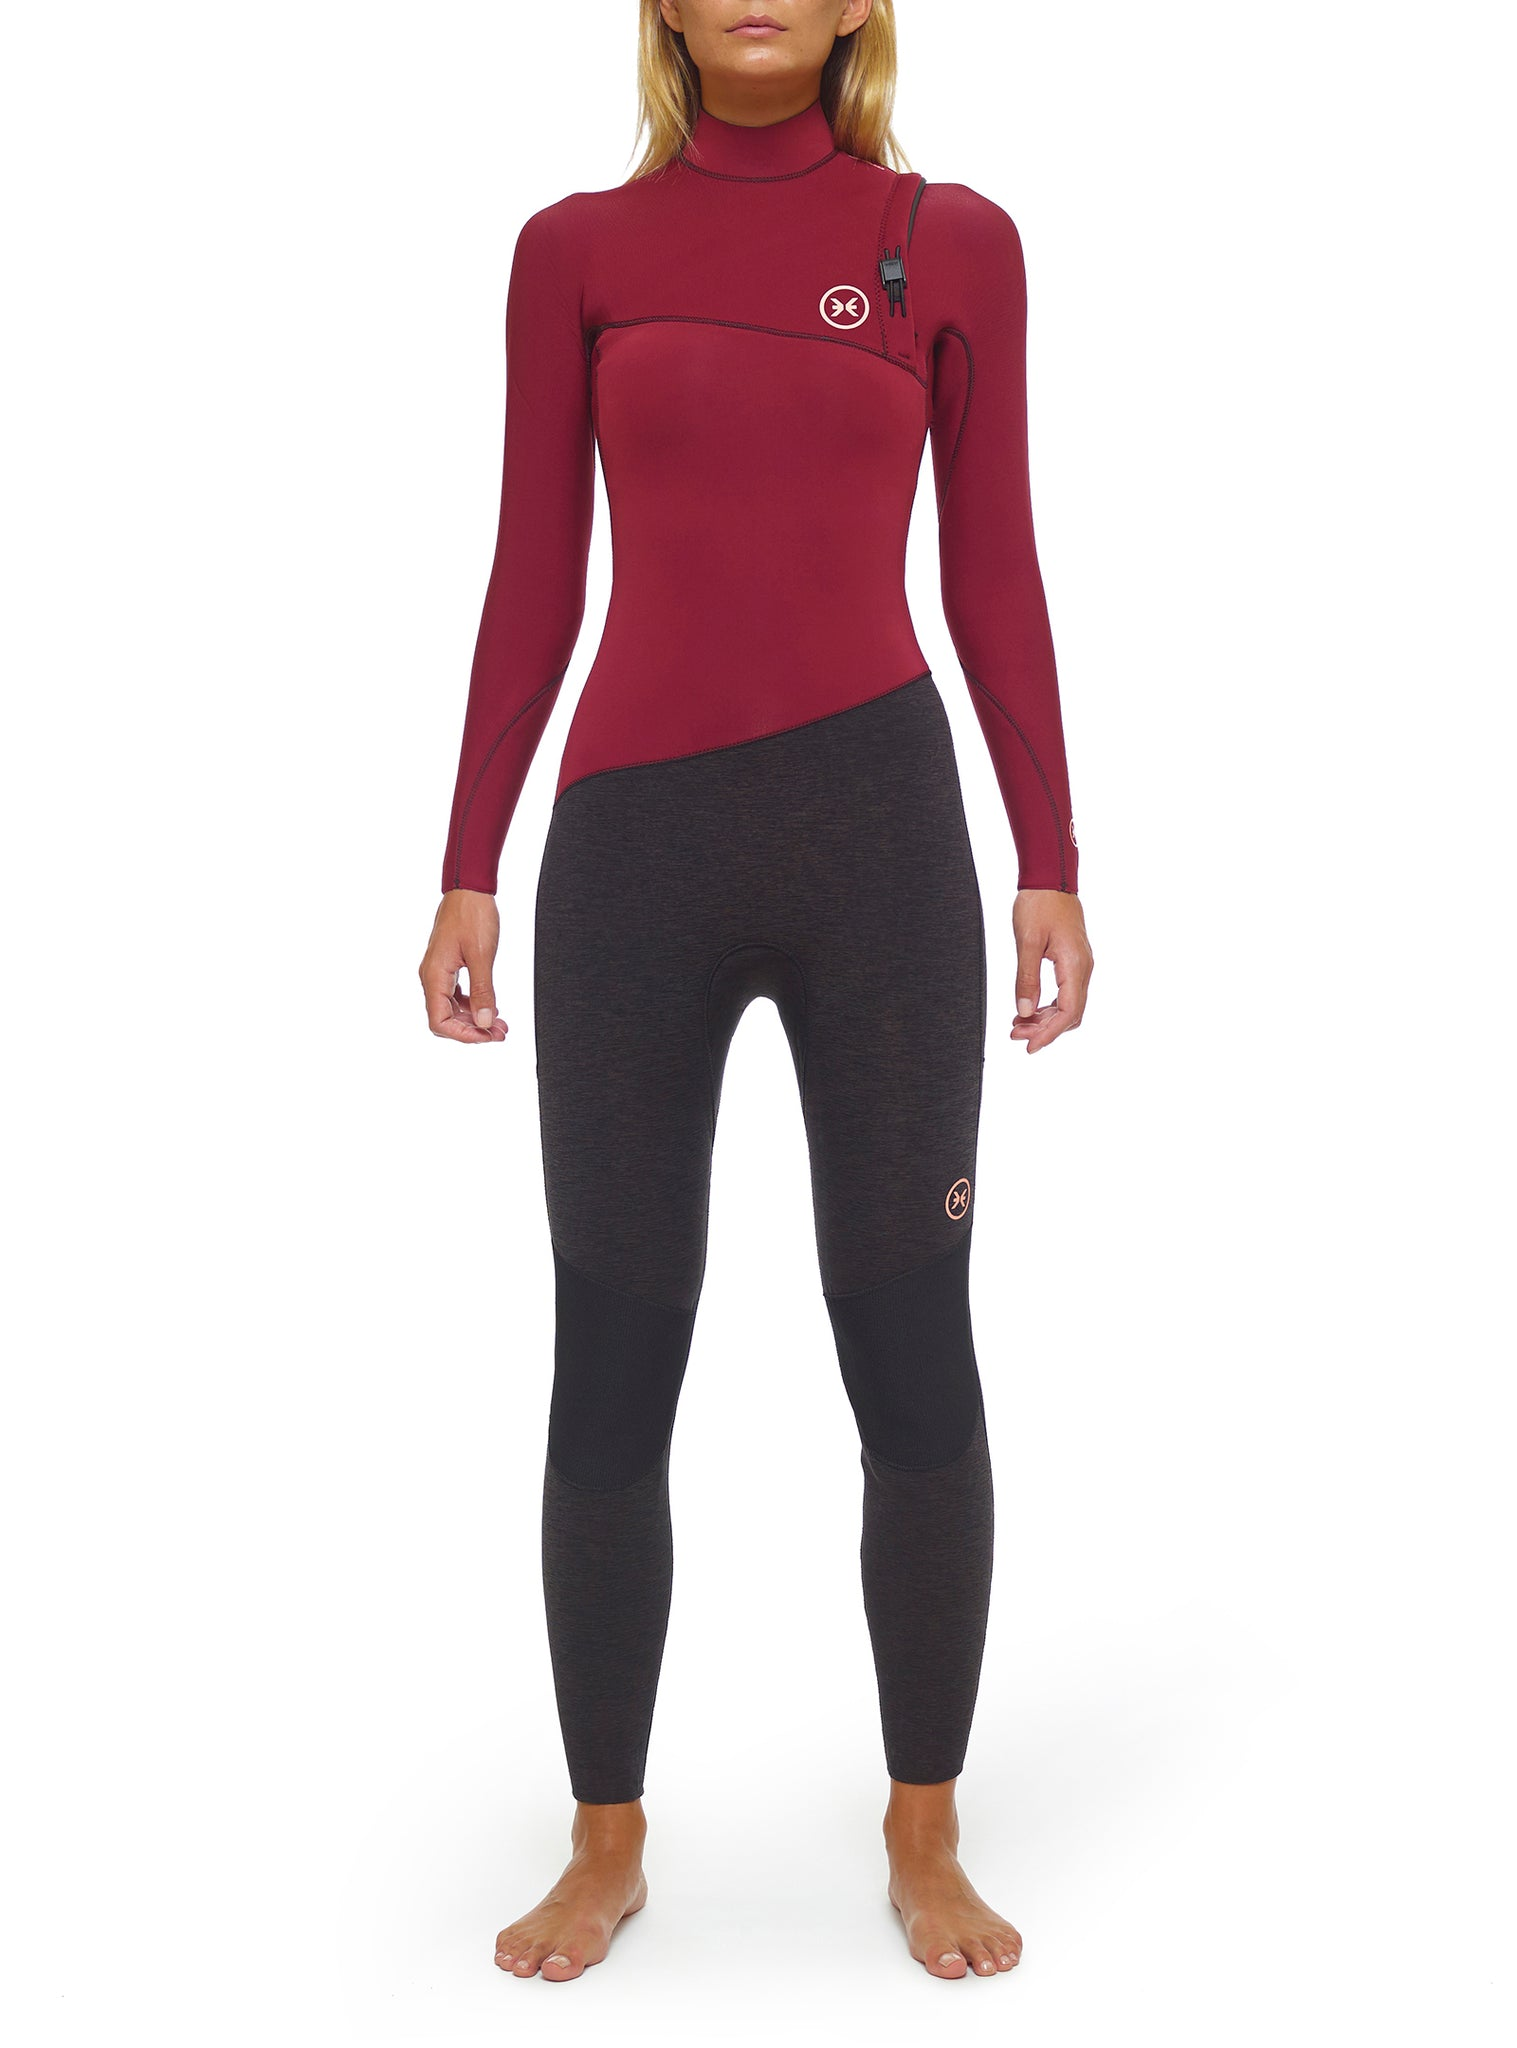 Wetsuit Woman Premium 4/3 Zipperless Red